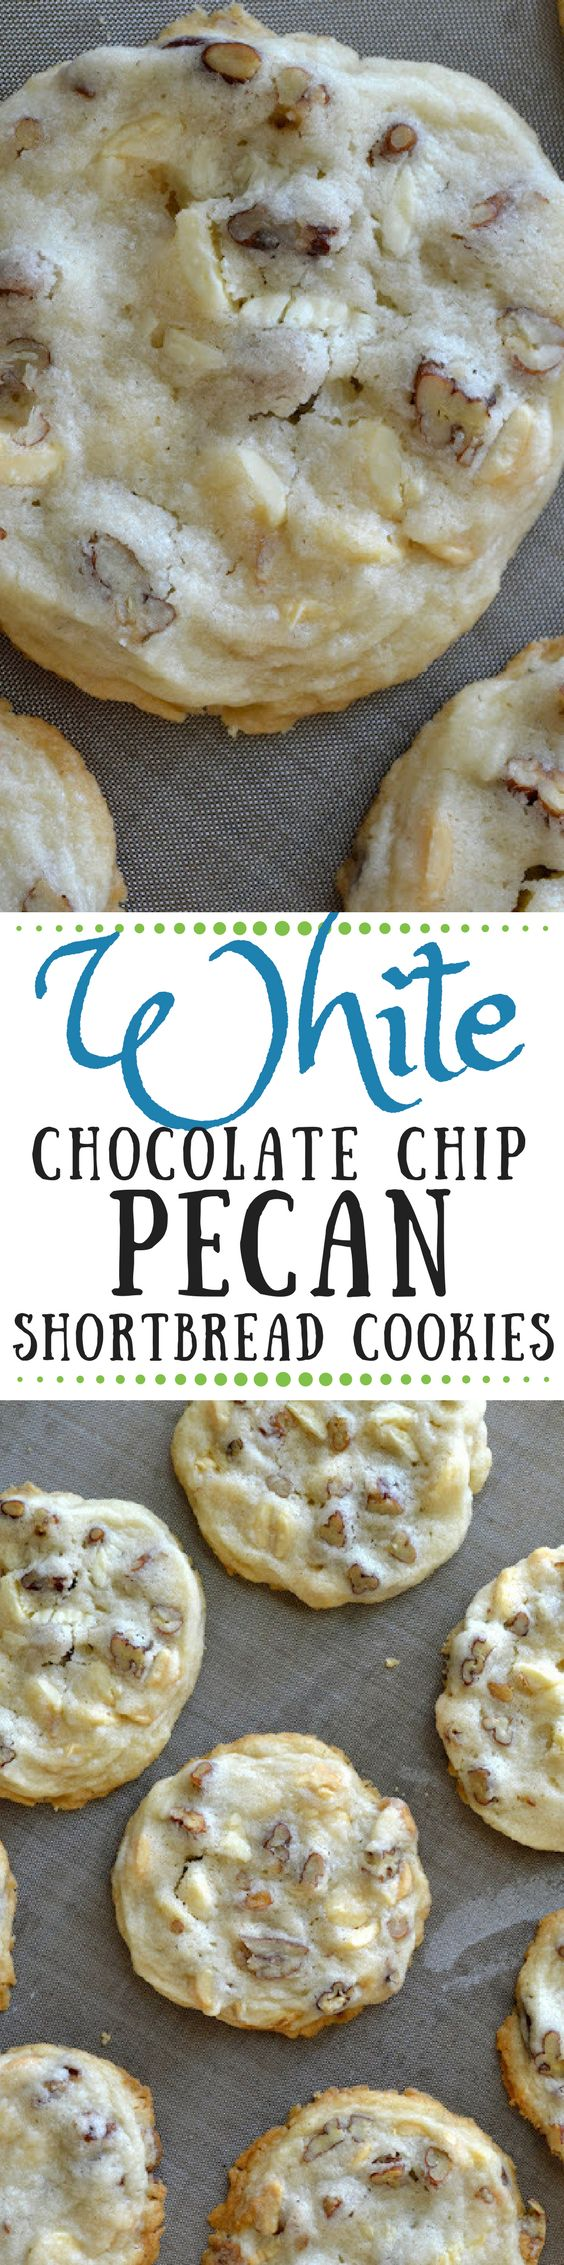 This easy White Chocolate Chip Pecan Shortbread Cookie recipe makes the perfect delicate, light shortbread cookies. The slice and bake dough freezes well, too, so you can bake them up whenever the urge strikes!